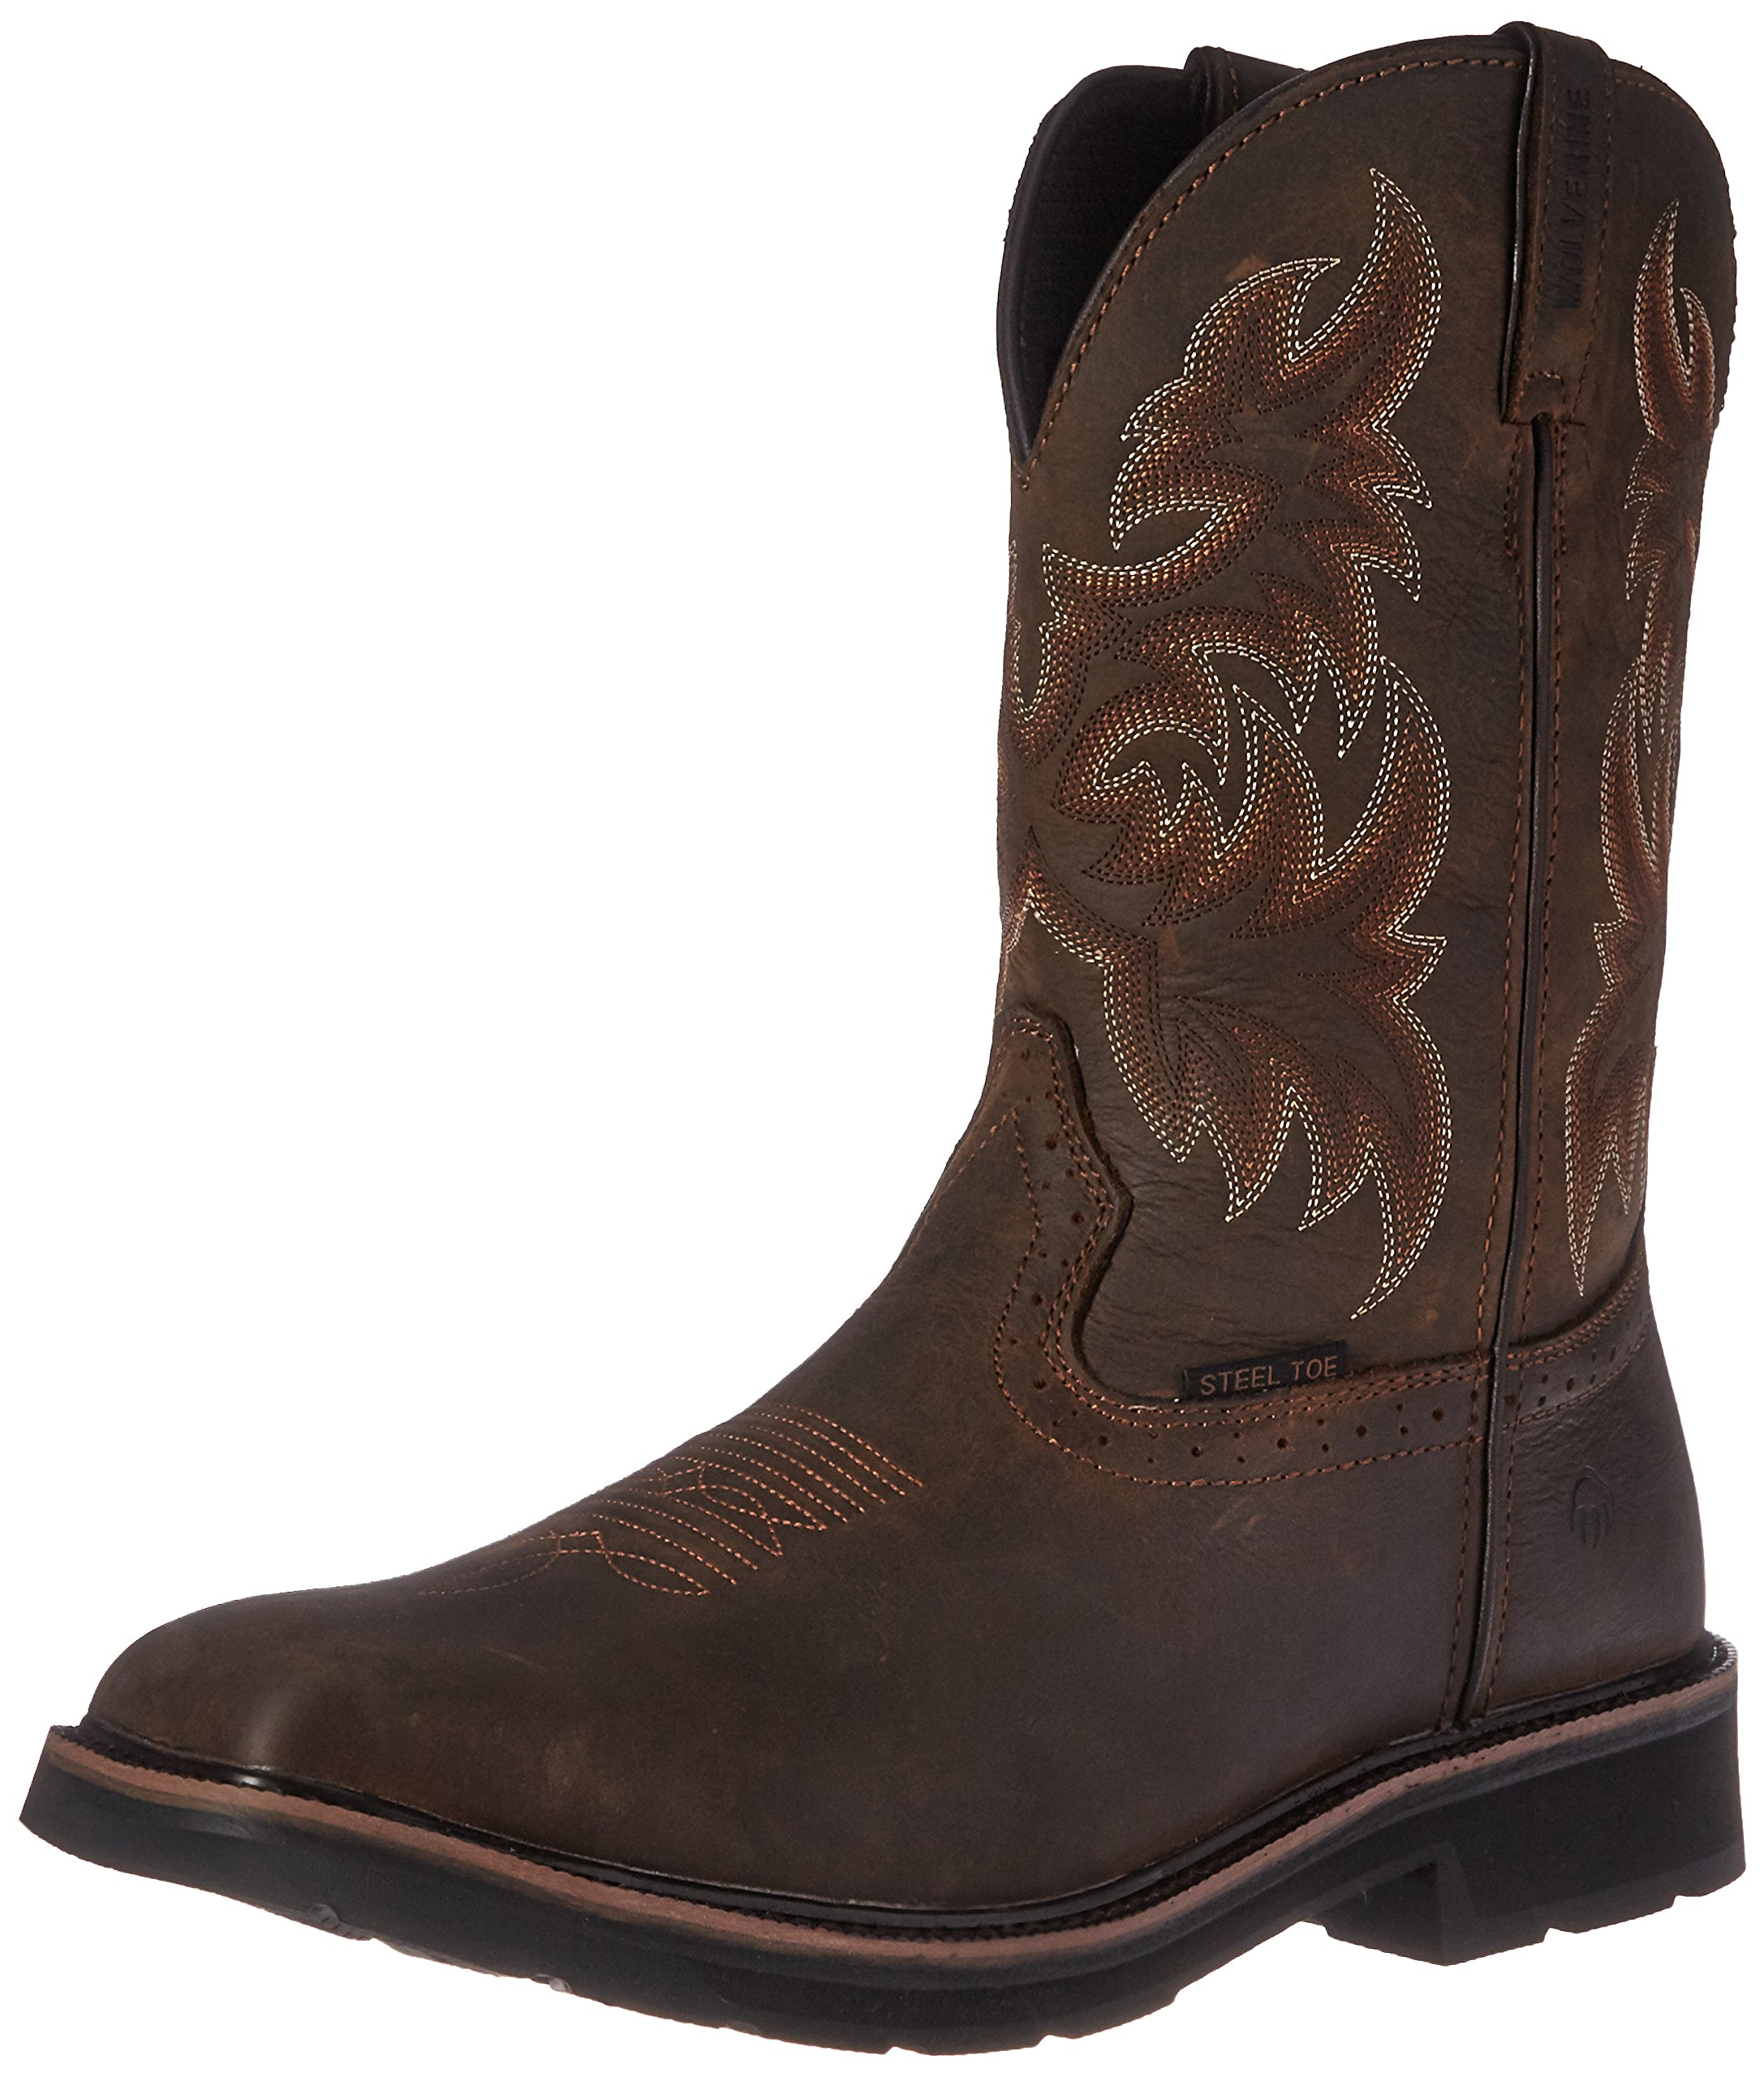 Wolverine Men's Rancher 10'' Square Steel Toe Work Boot, Dark Brown/Rust, 10.5 M US